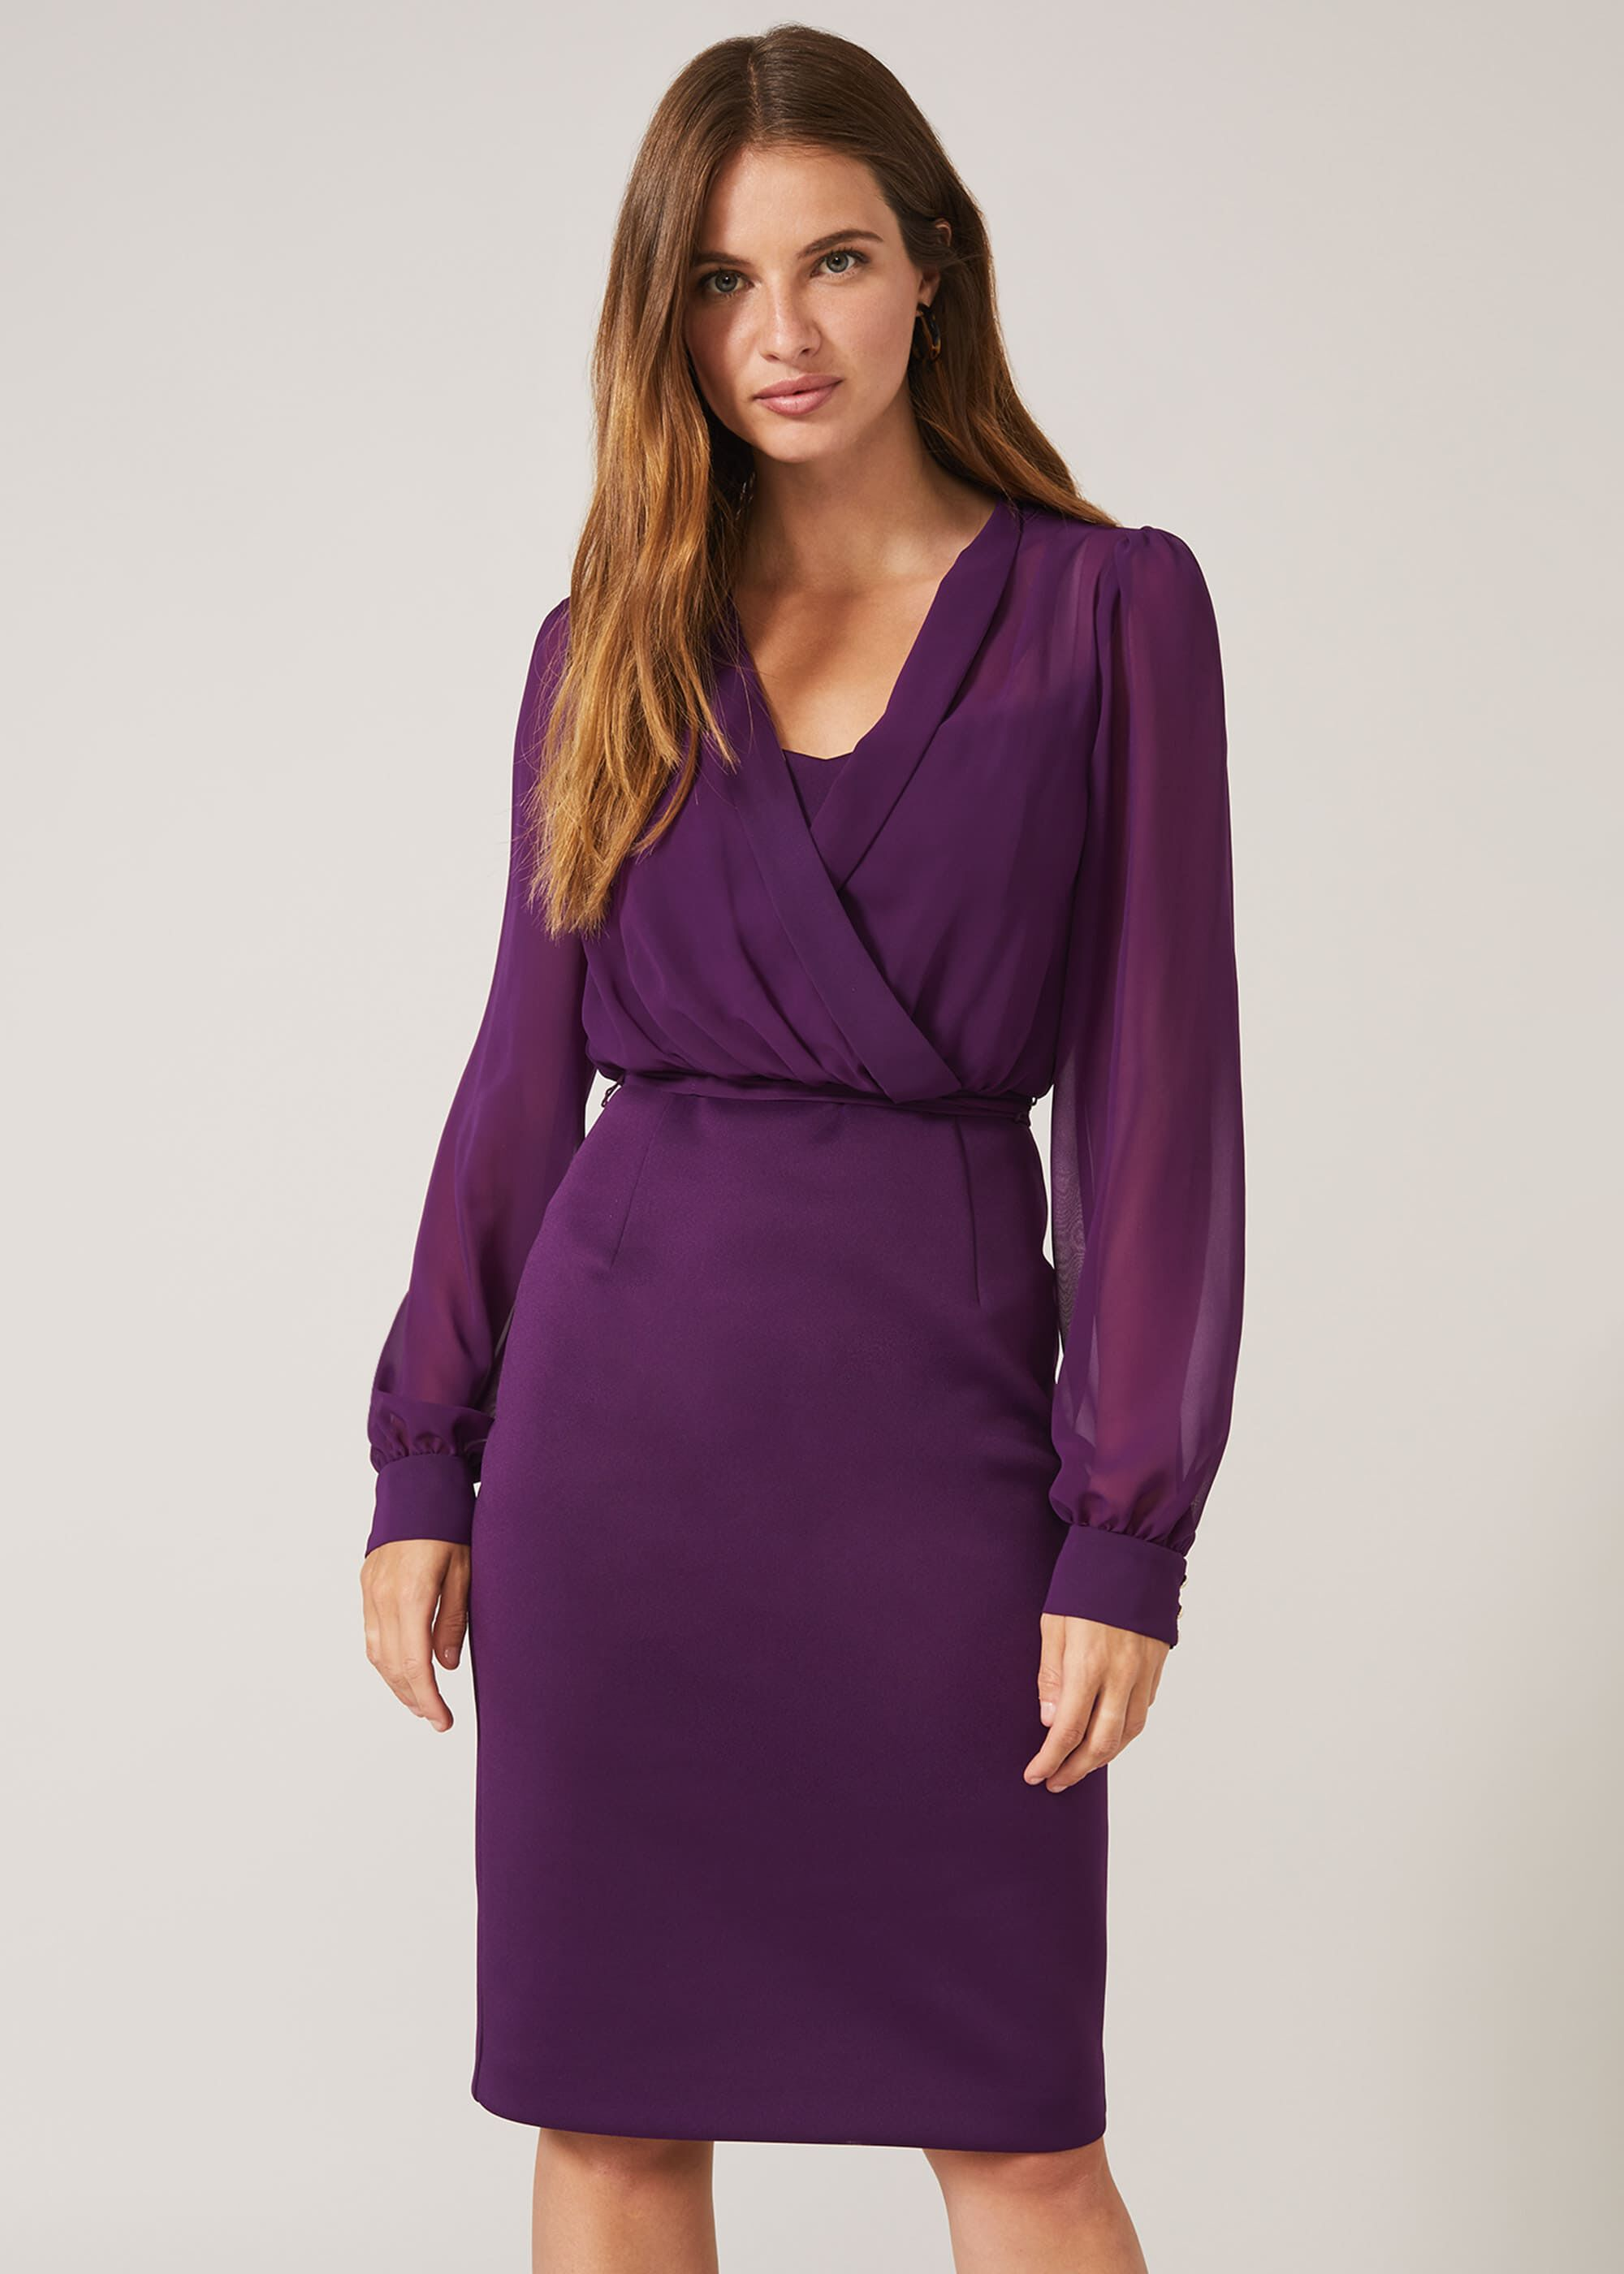 Phase Eight Sian Scuba Dress, Purple, Fitted, Occasion Dress